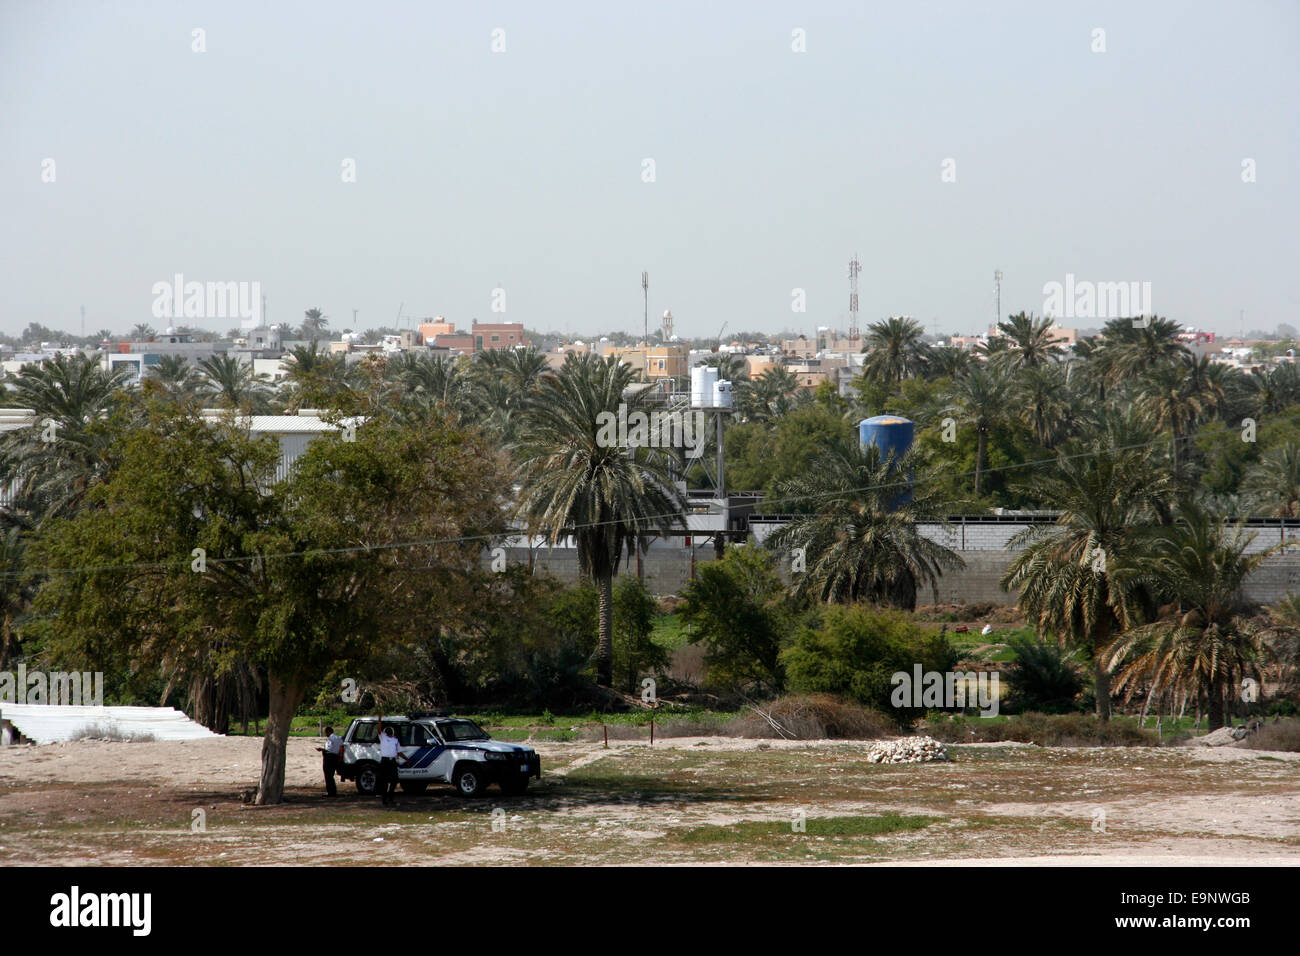 Police in the grounds of Qala'at Bahrain, also known as the Portuguese Fort, near Manama, Bahrain - Stock Image